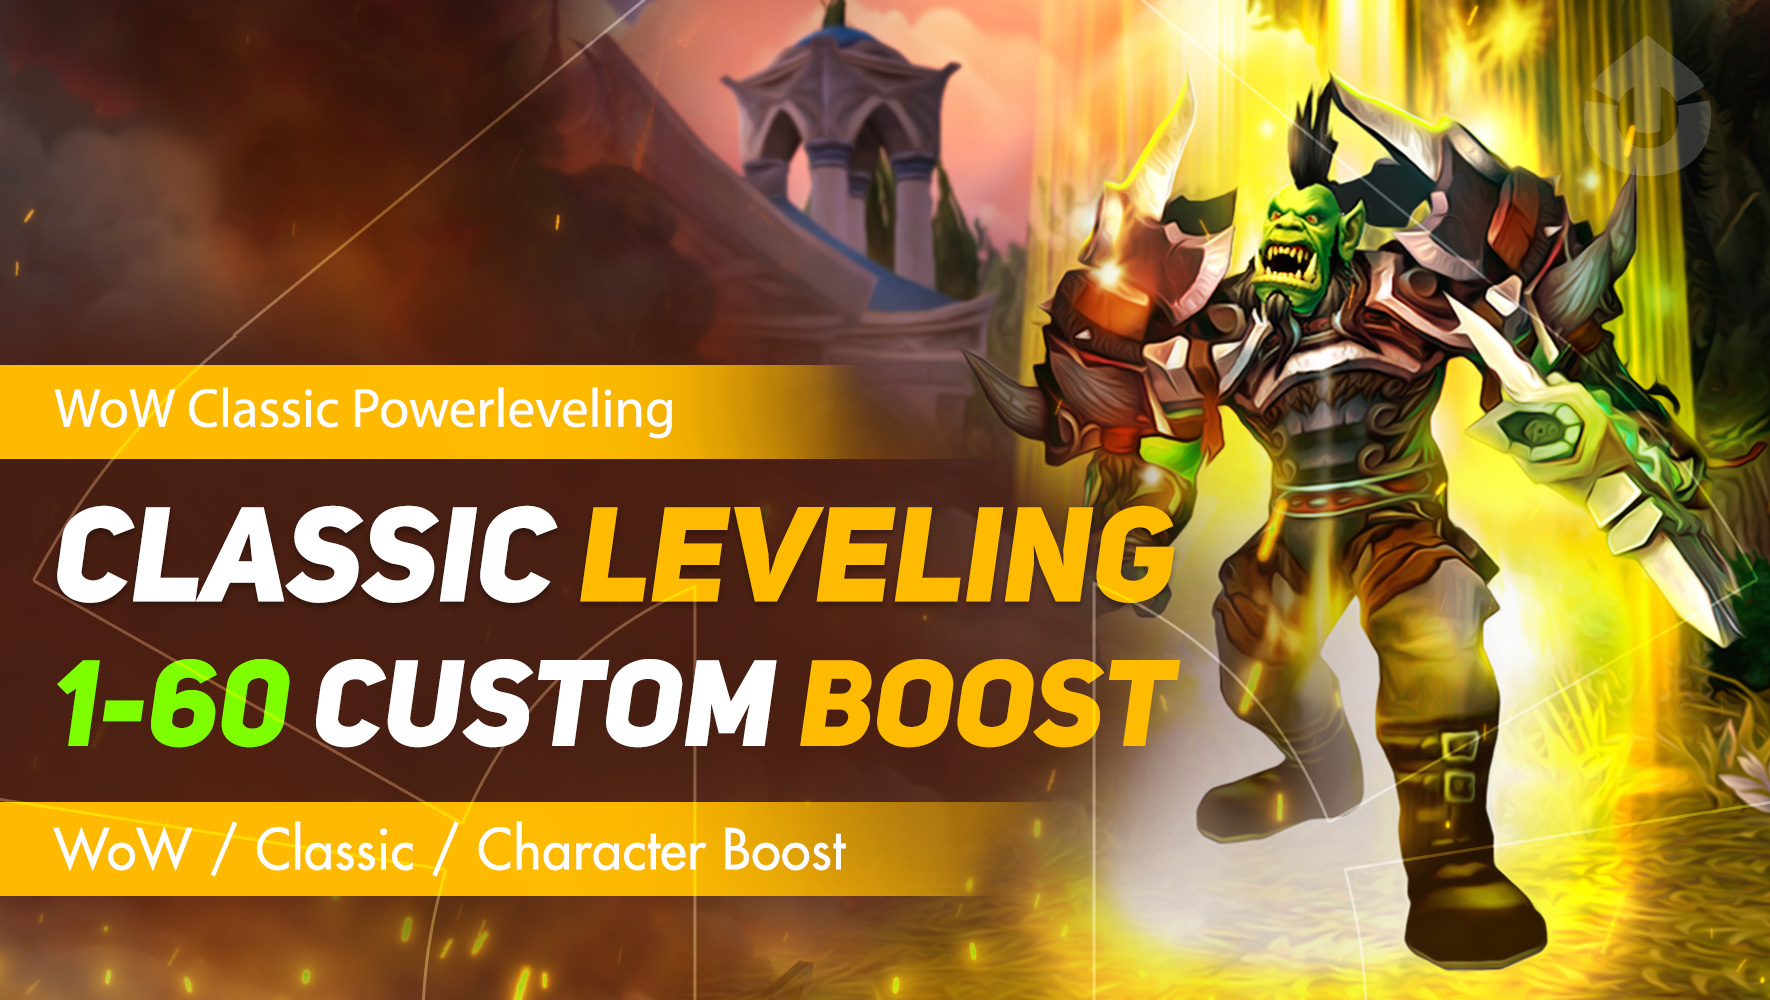 Leveling 1-60 MythicBooster - e2p.com